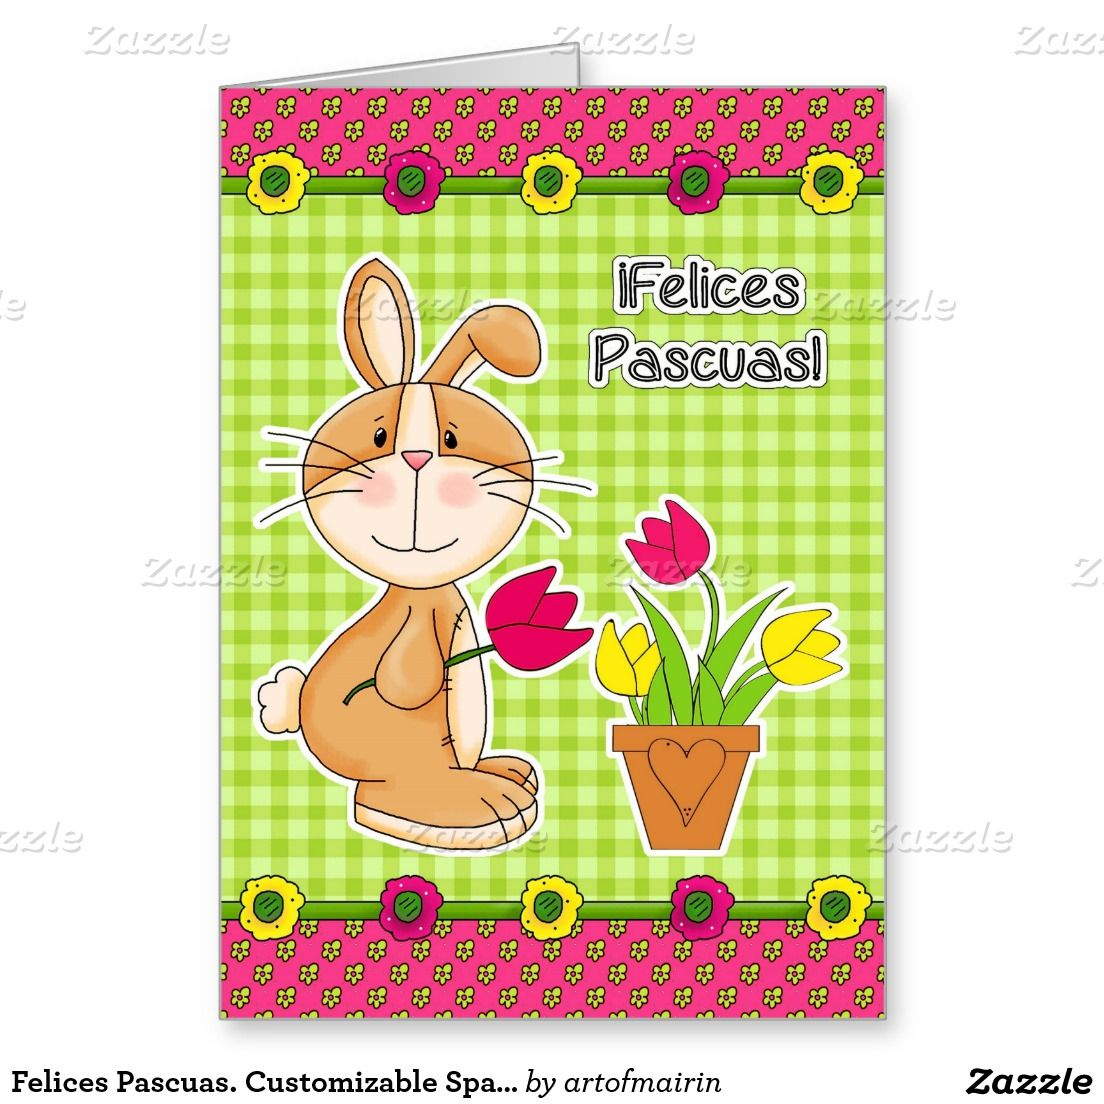 Felices pascuas customizable spanish easter cards funny customizable spanish easter cards kristyandbryce Gallery